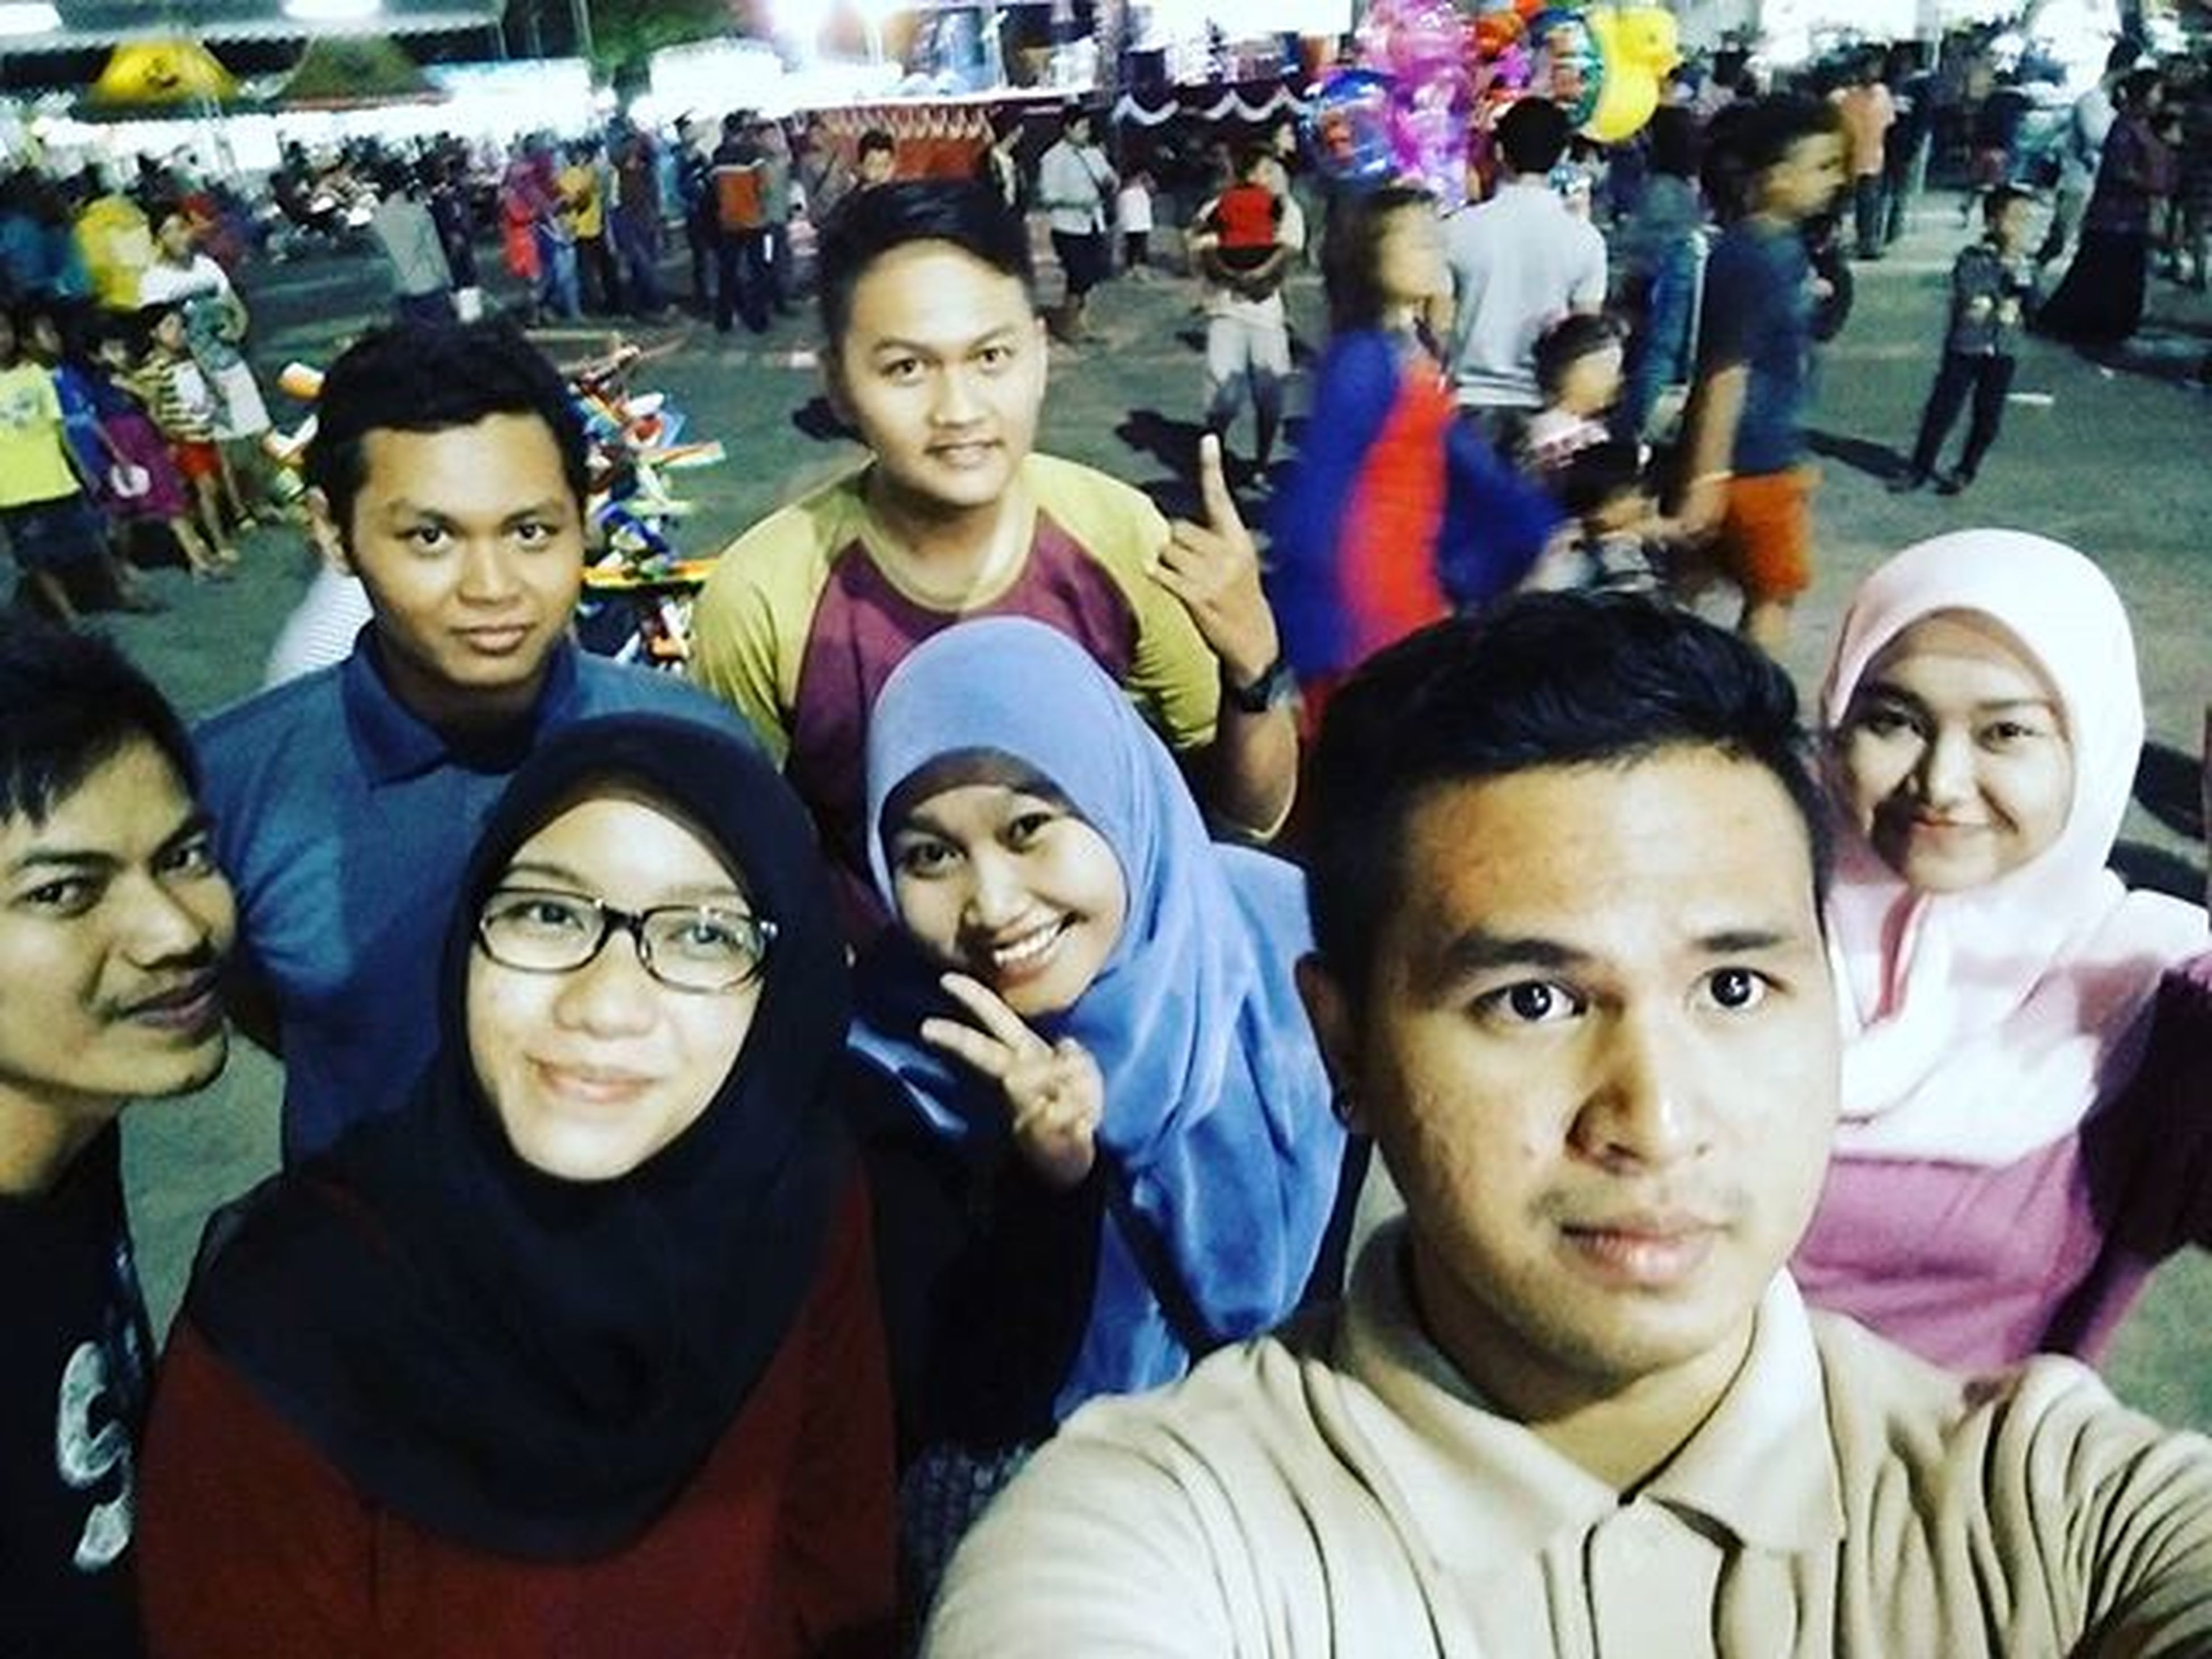 latepost with kartar new direction Kartarnewdirection Kartar Newdirection Tlogopatut Kebomas Kebomasgresik